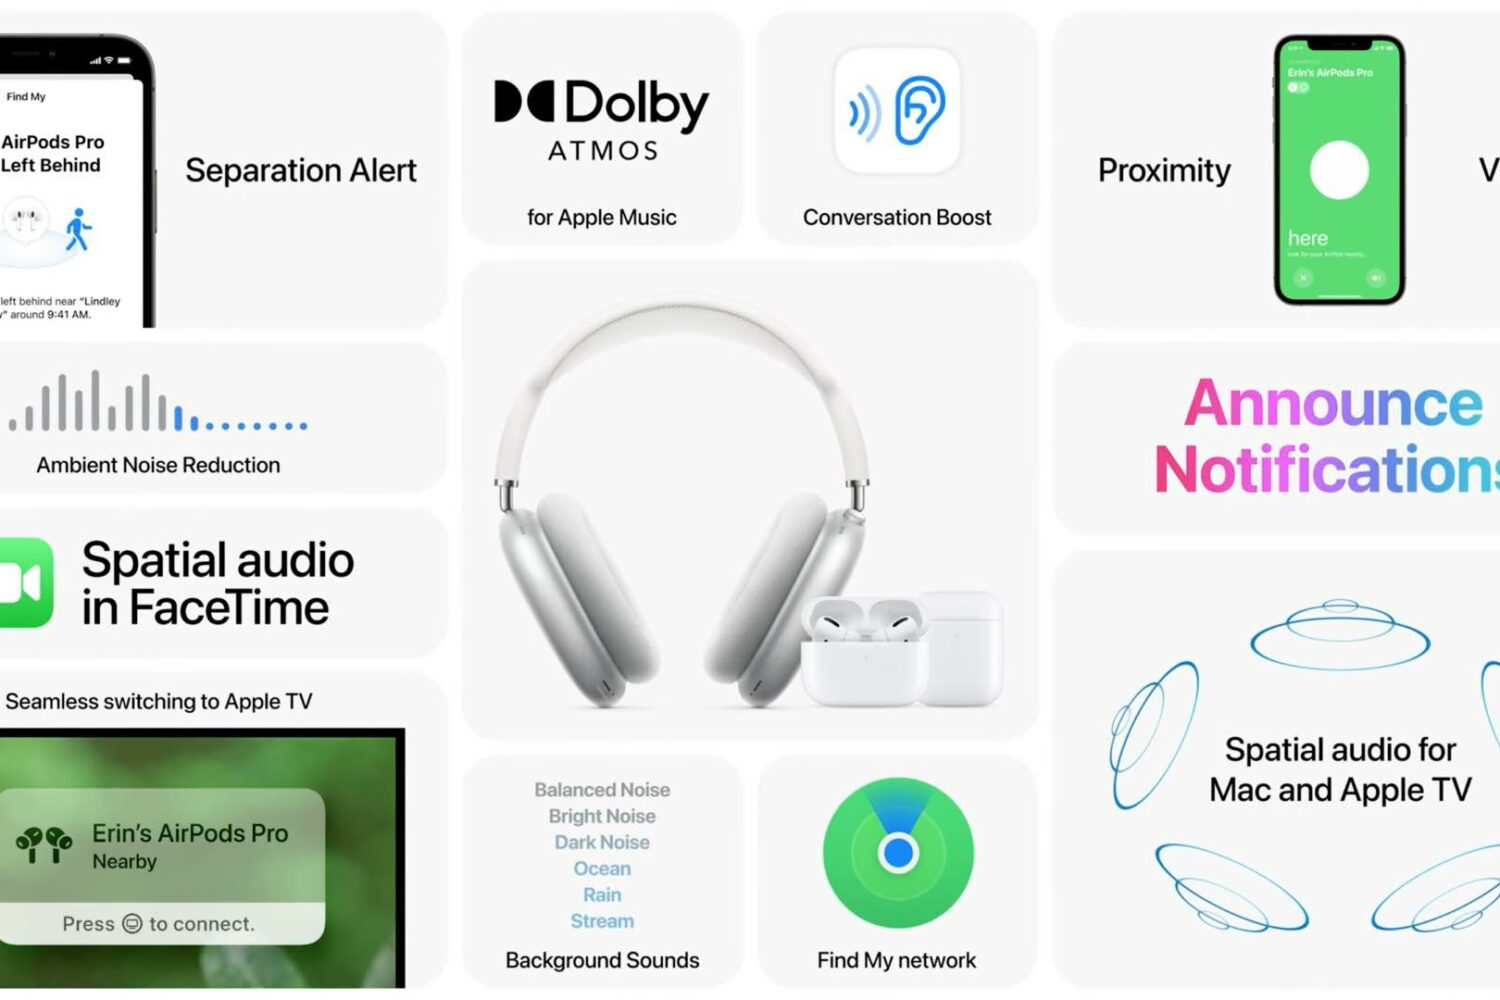 A slide from Apple's June 2021 WWDC event, illustrating all the new AirPods features in iOS 15 and other updates